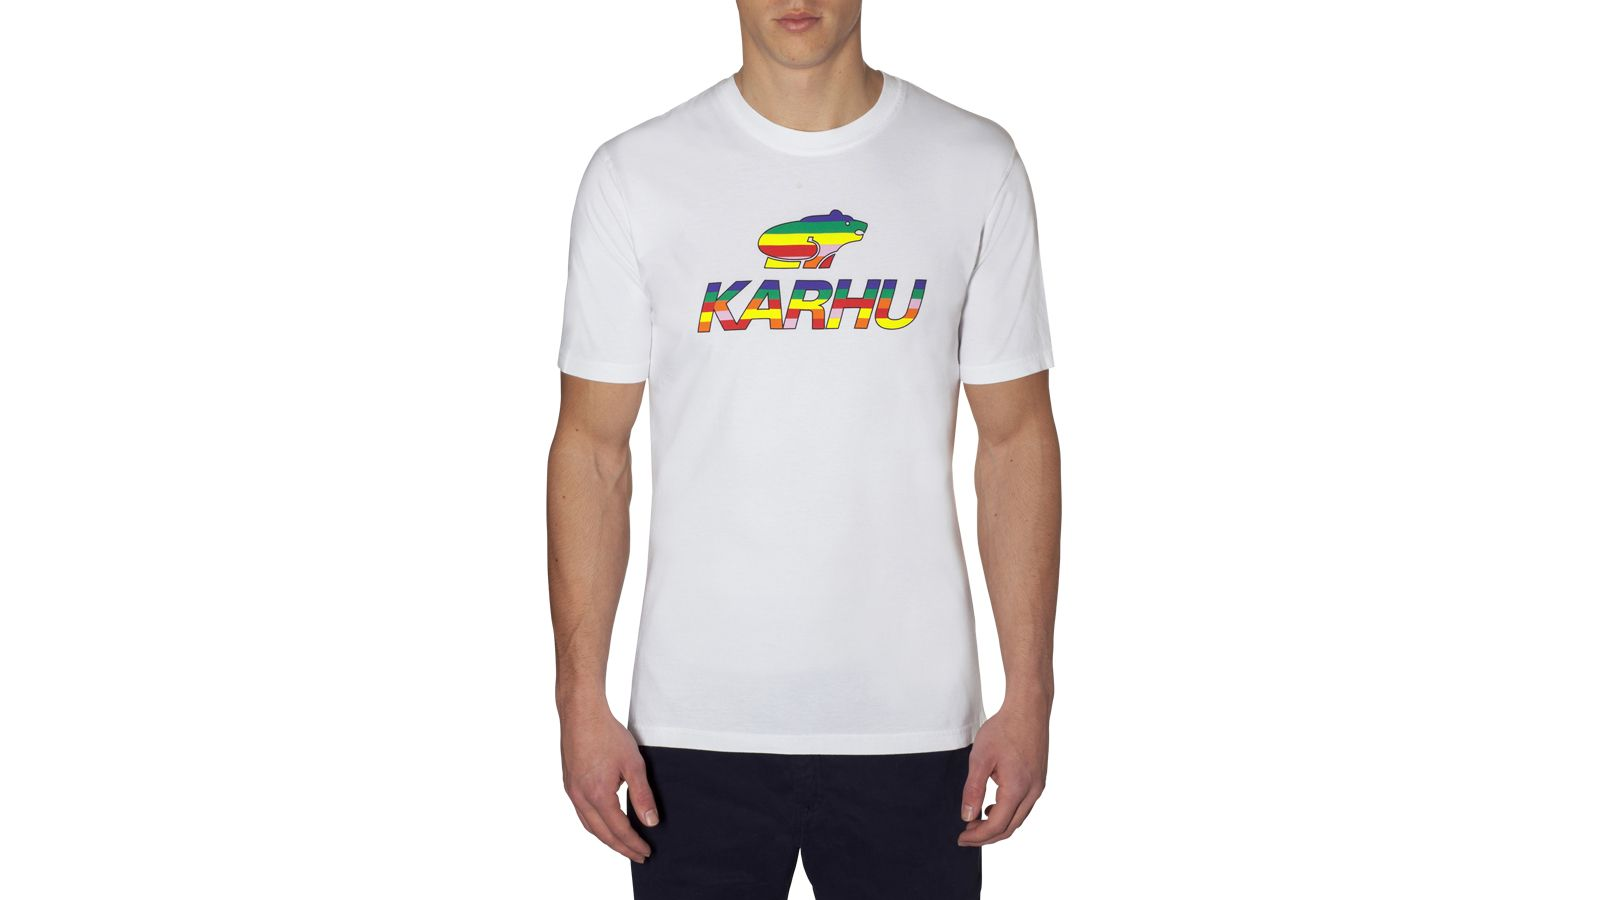 Karhu, Team college t-shirt - Alava Shop